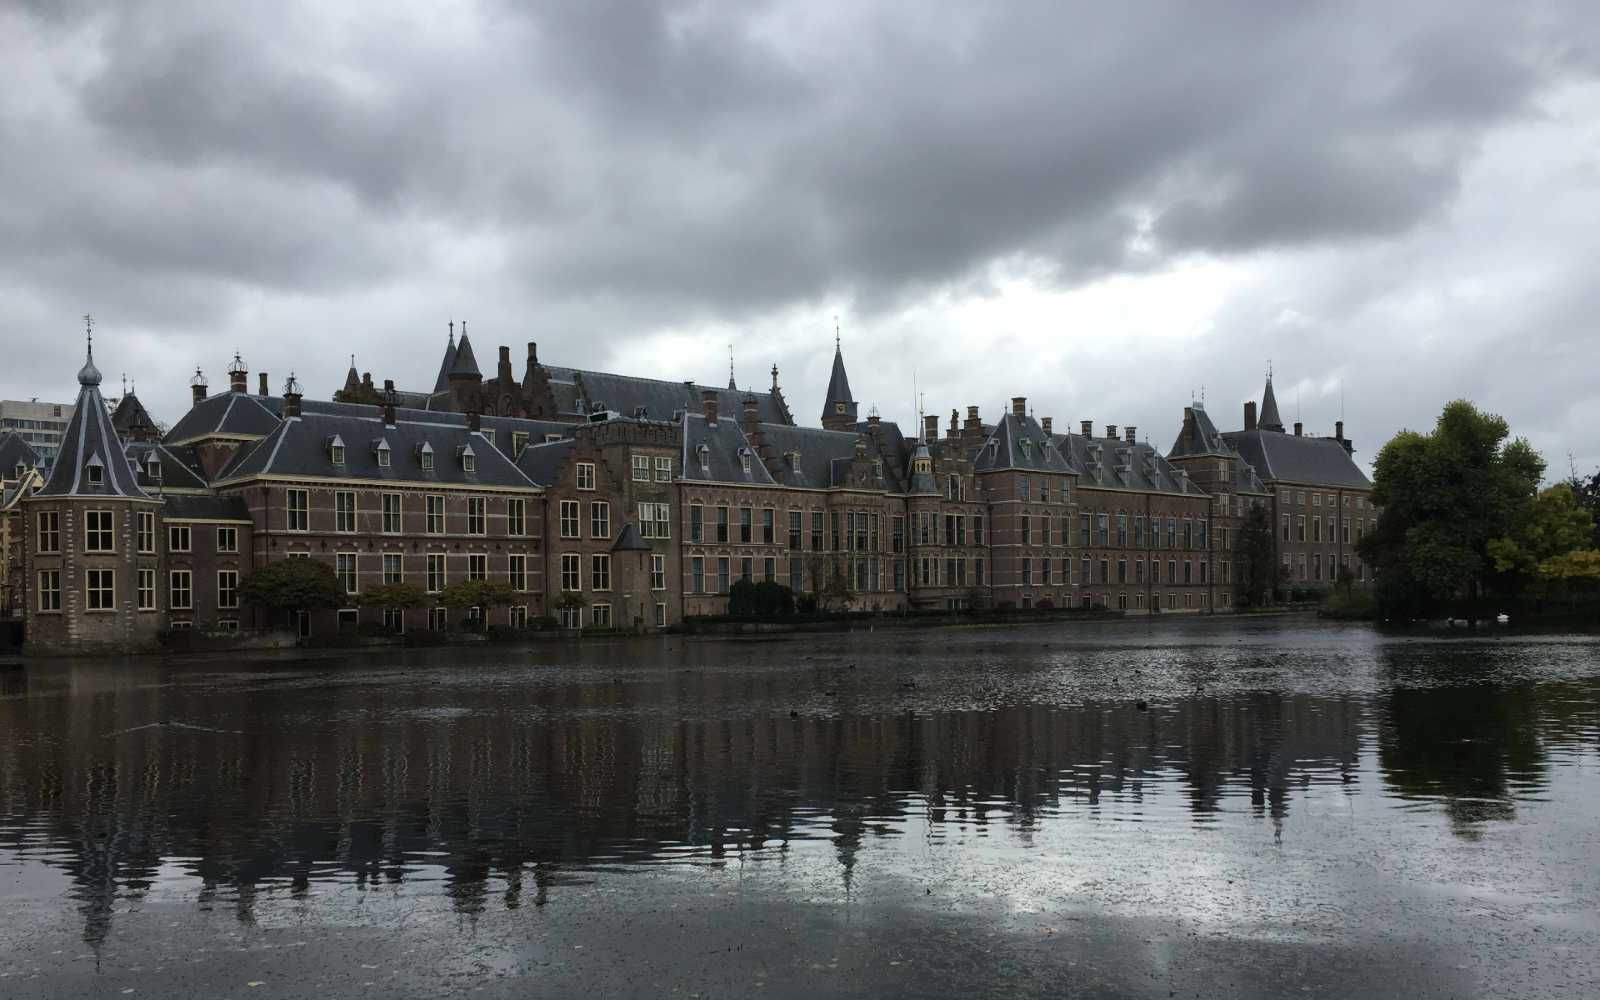 The Heart of The Hague image